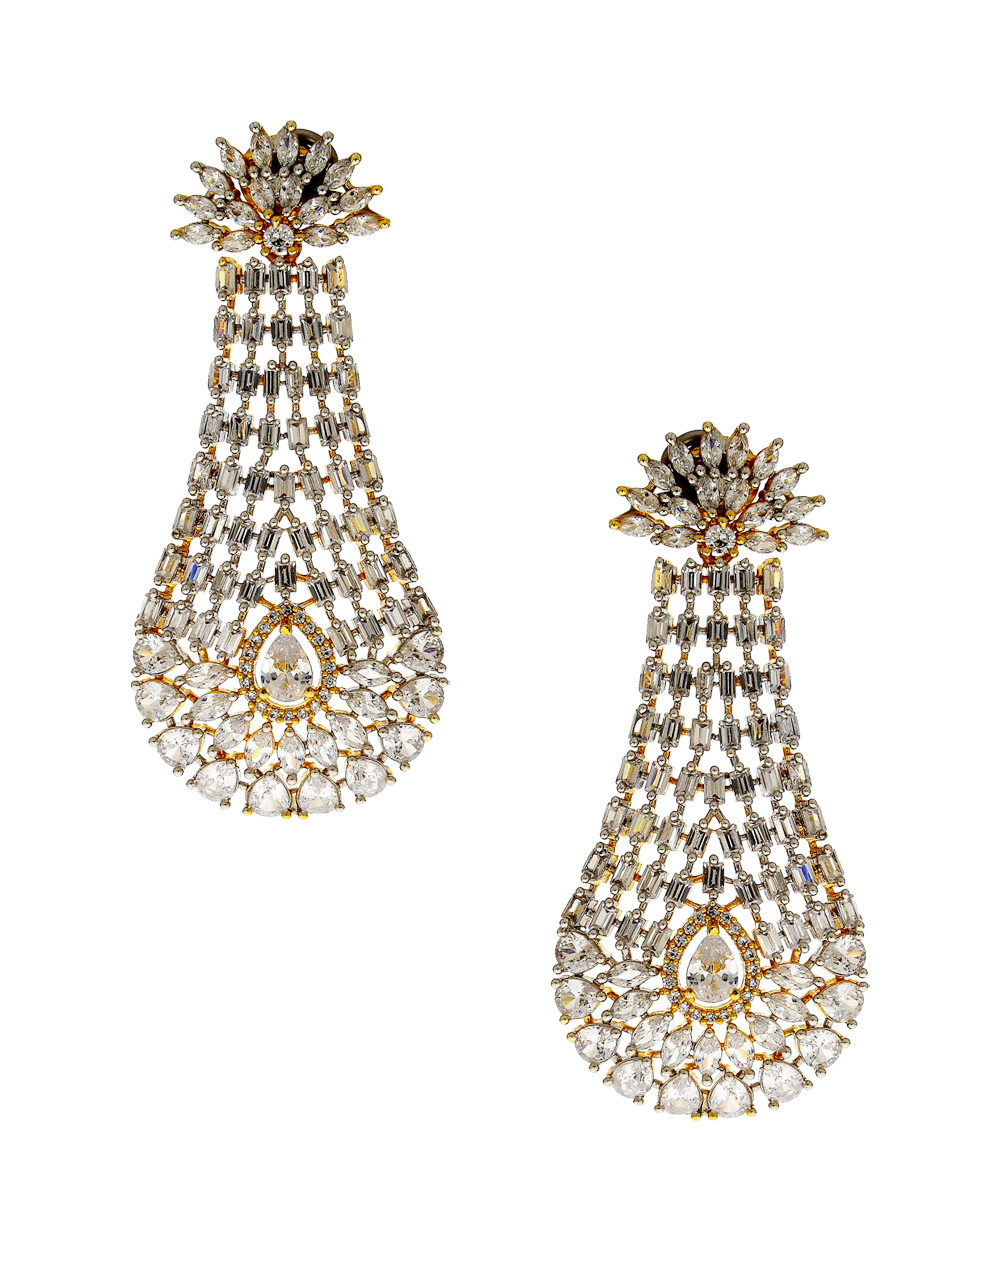 Gold Finish Unique Design American Diamond Earrings For Girls